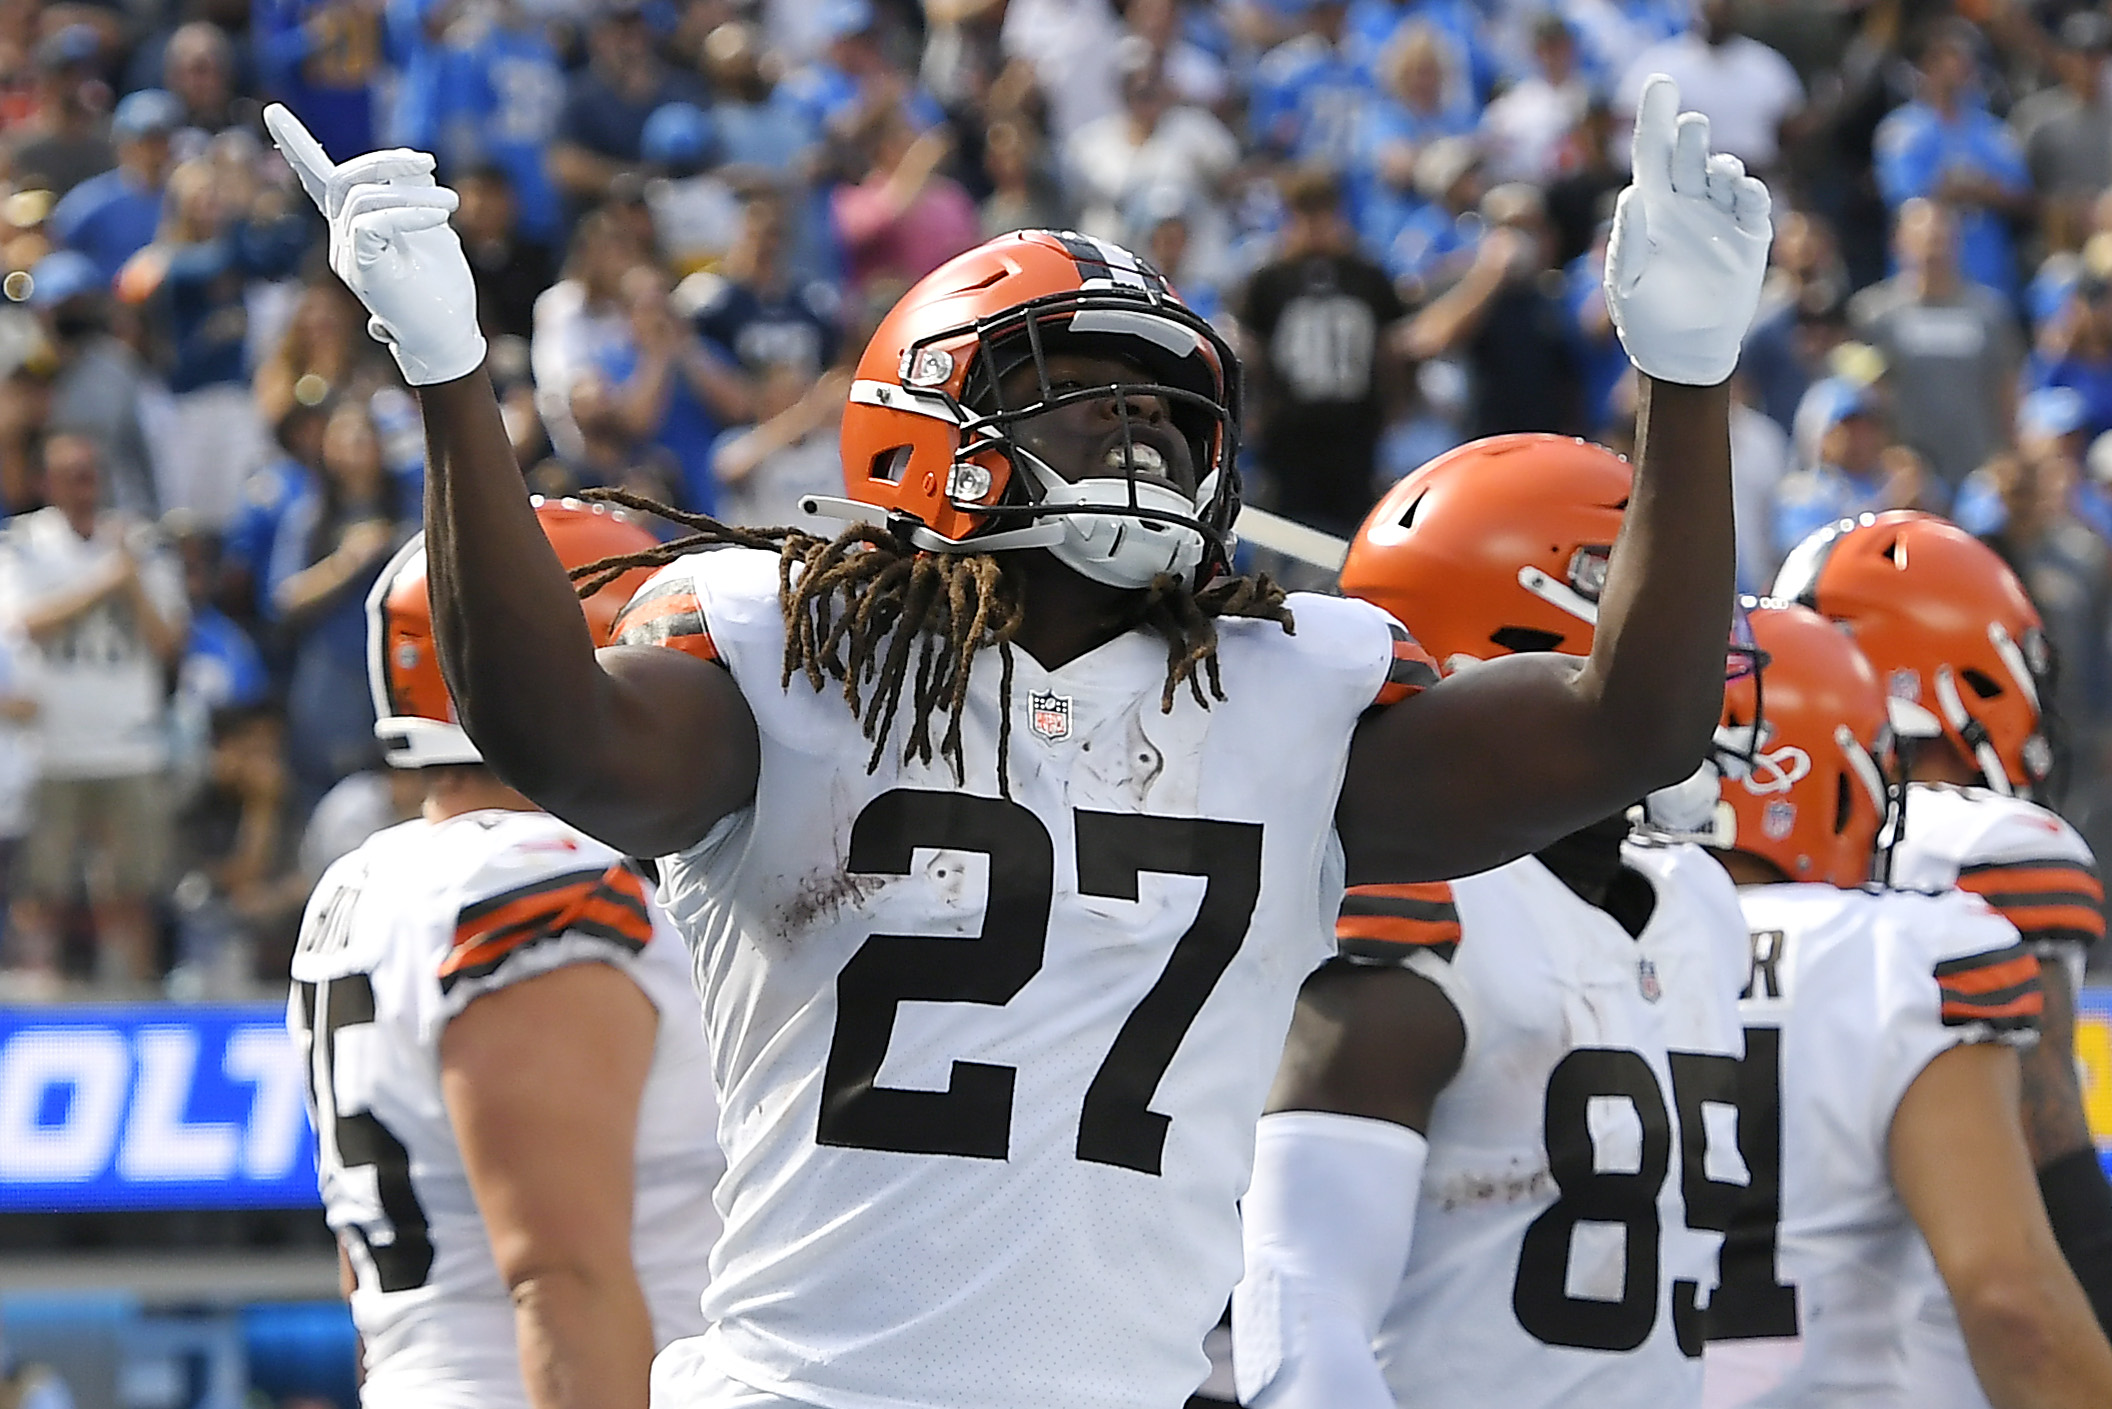 Kareem Hunt #27 of the Cleveland Browns celebrates after running for a touchdown during the second quarter against the Los Angeles Chargers at SoFi Stadium on October 10, 2021 in Inglewood, California.